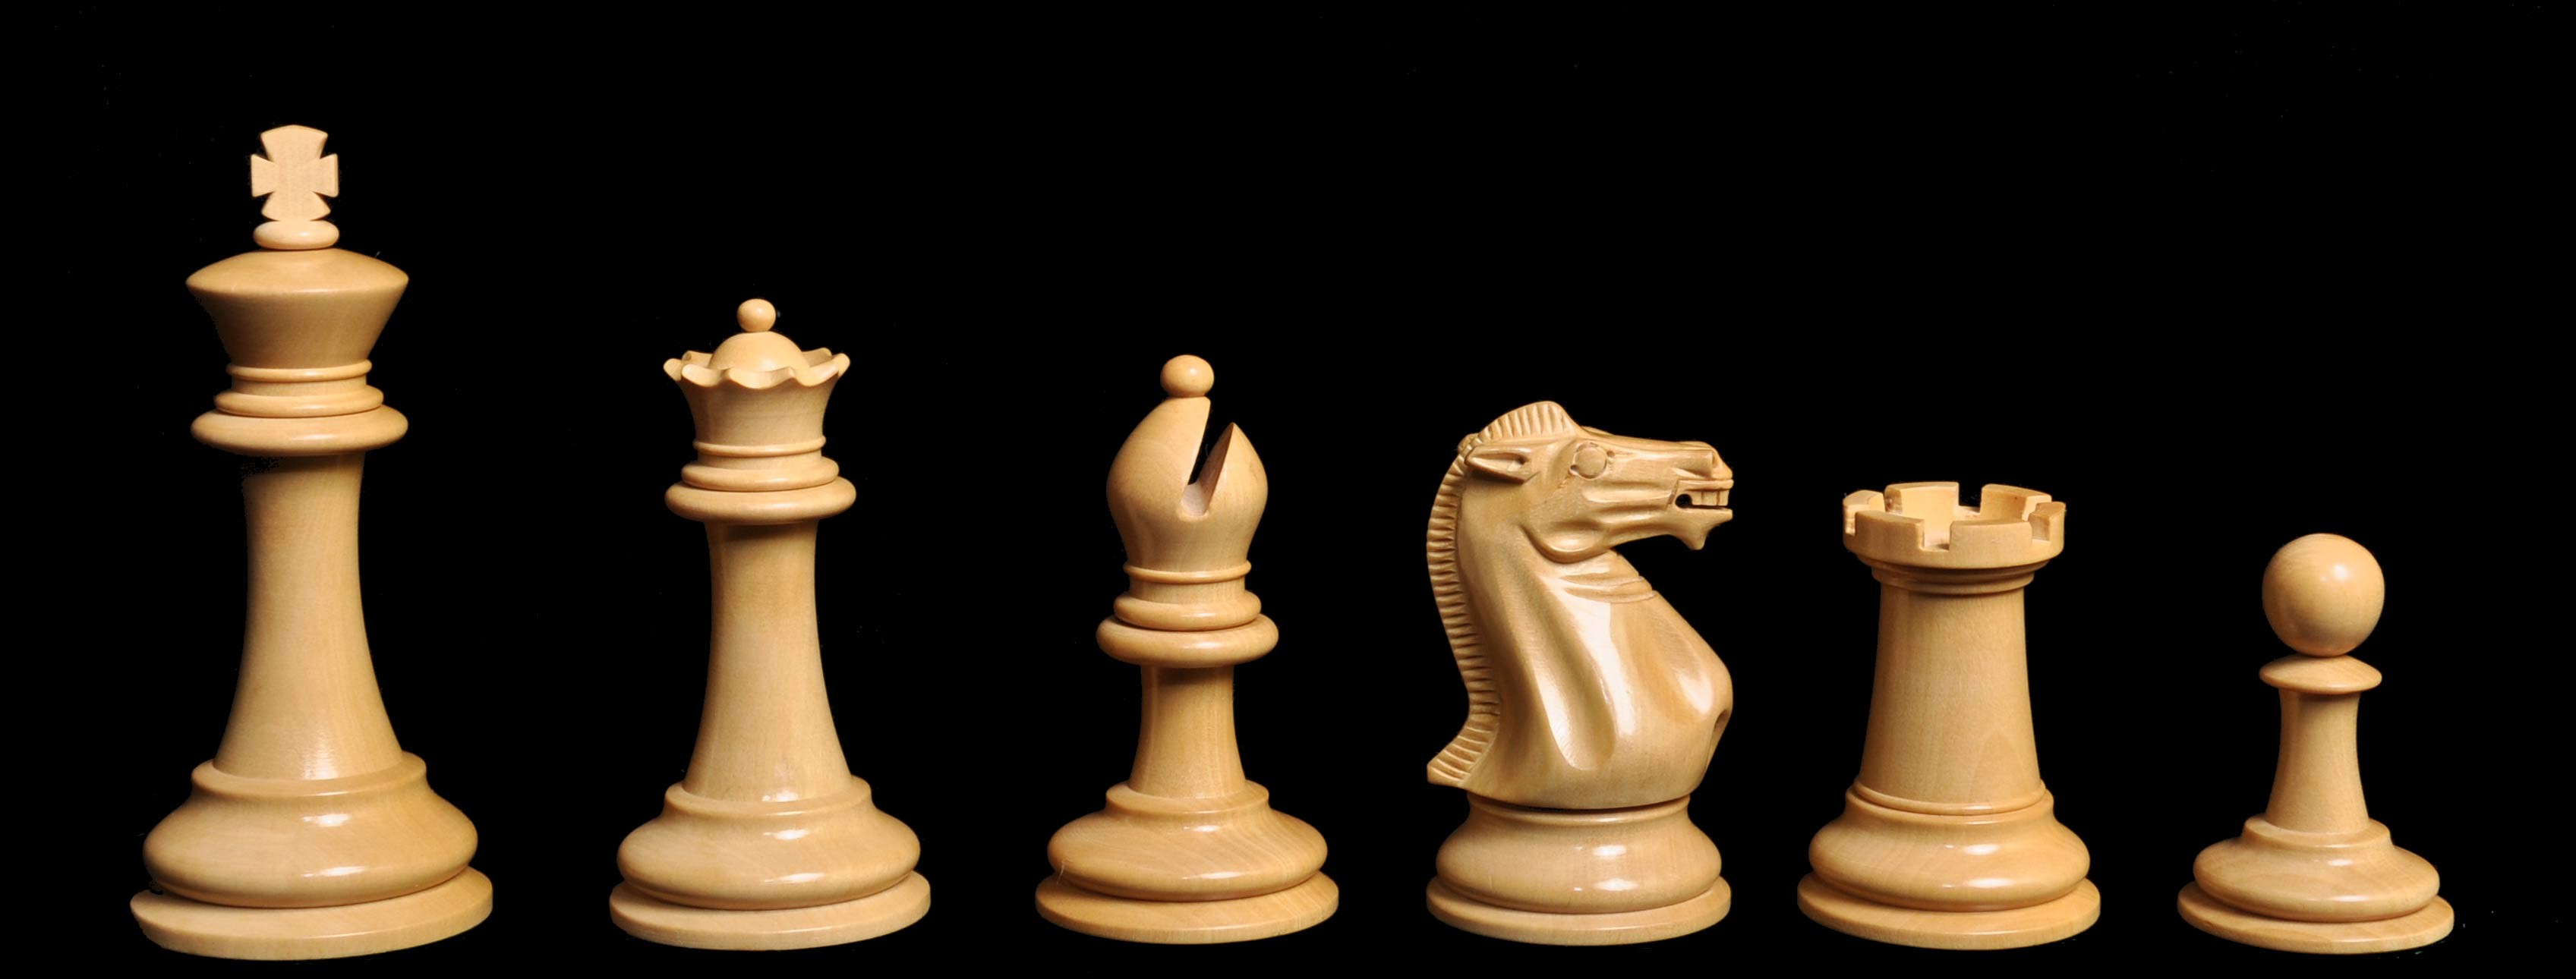 3 1 2 King Height Set Chess Forums